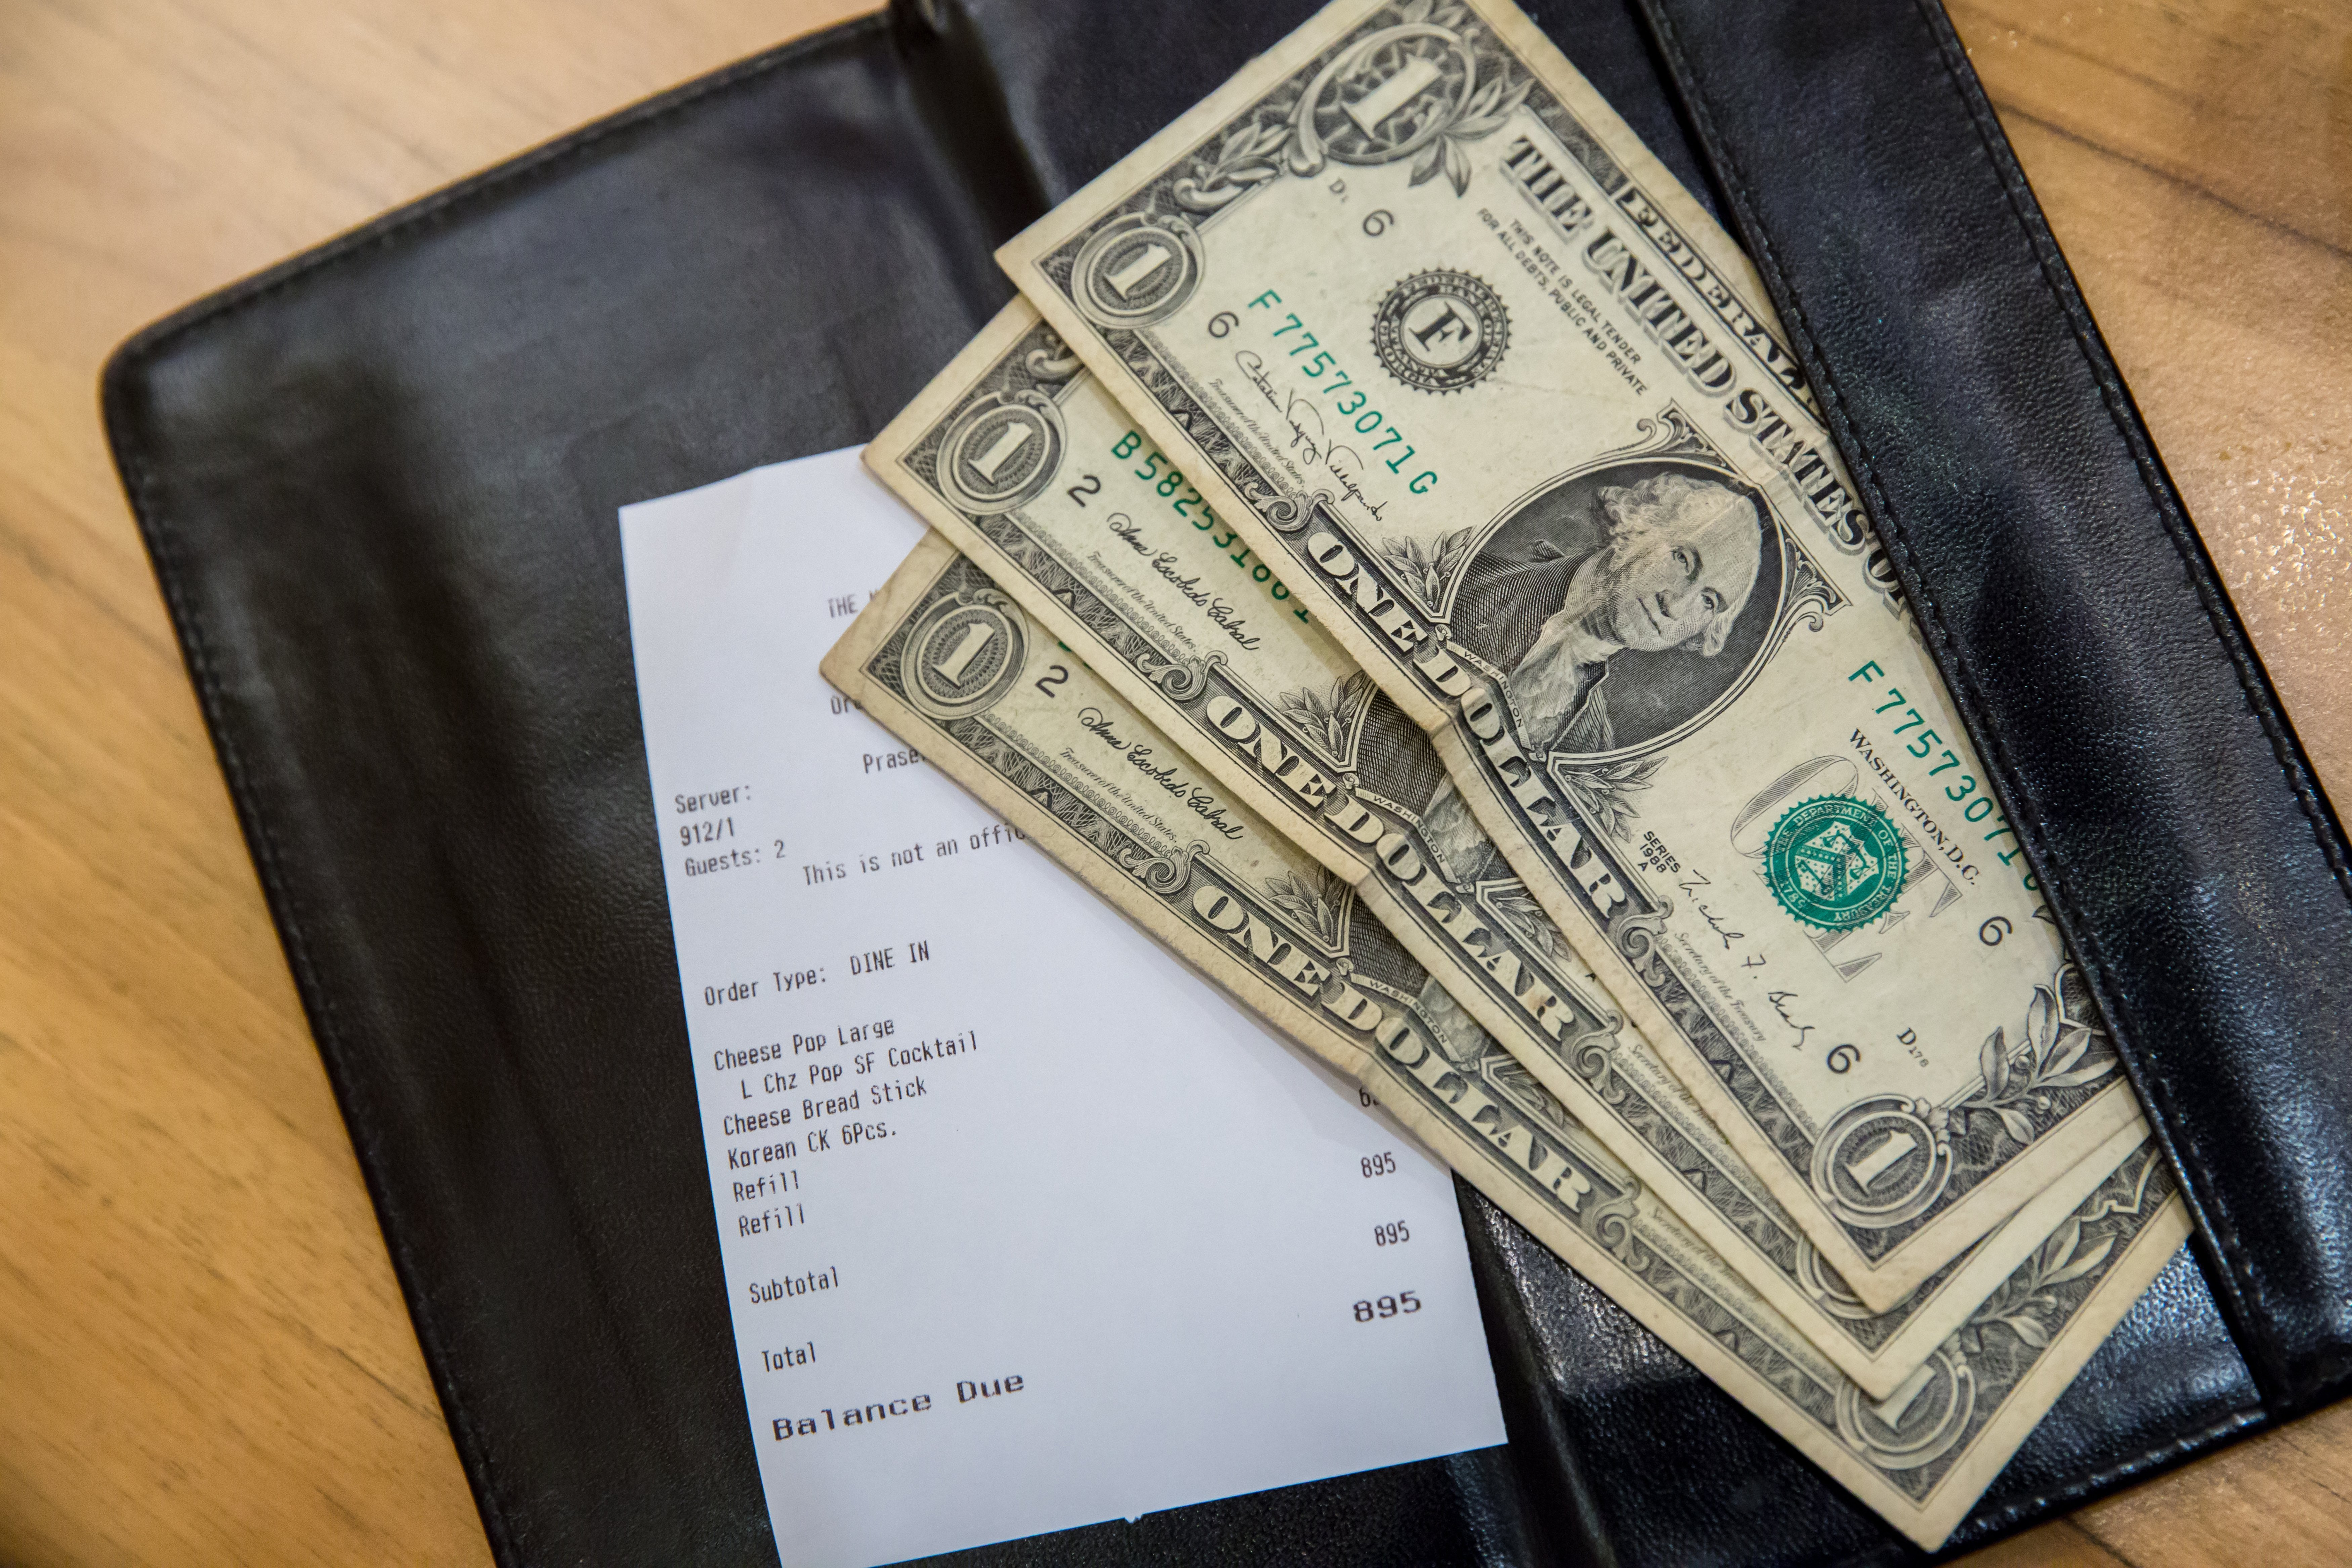 An open wallet with money and receipt | Photo: Shutterstock